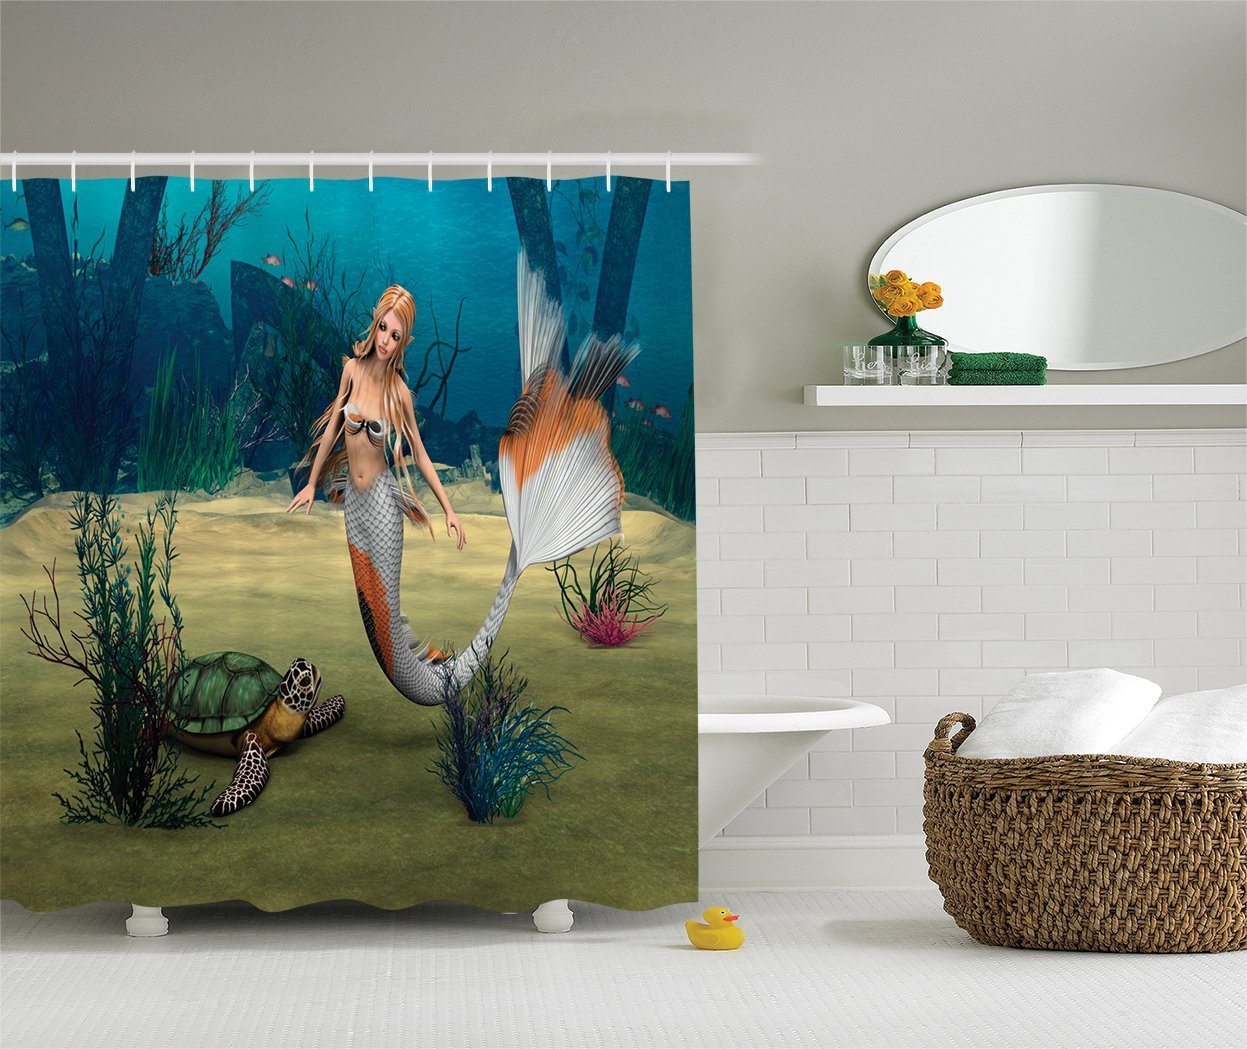 Cute Mermaid and Turtle Fantasy World in Ocean Design Fabric Shower Curtain